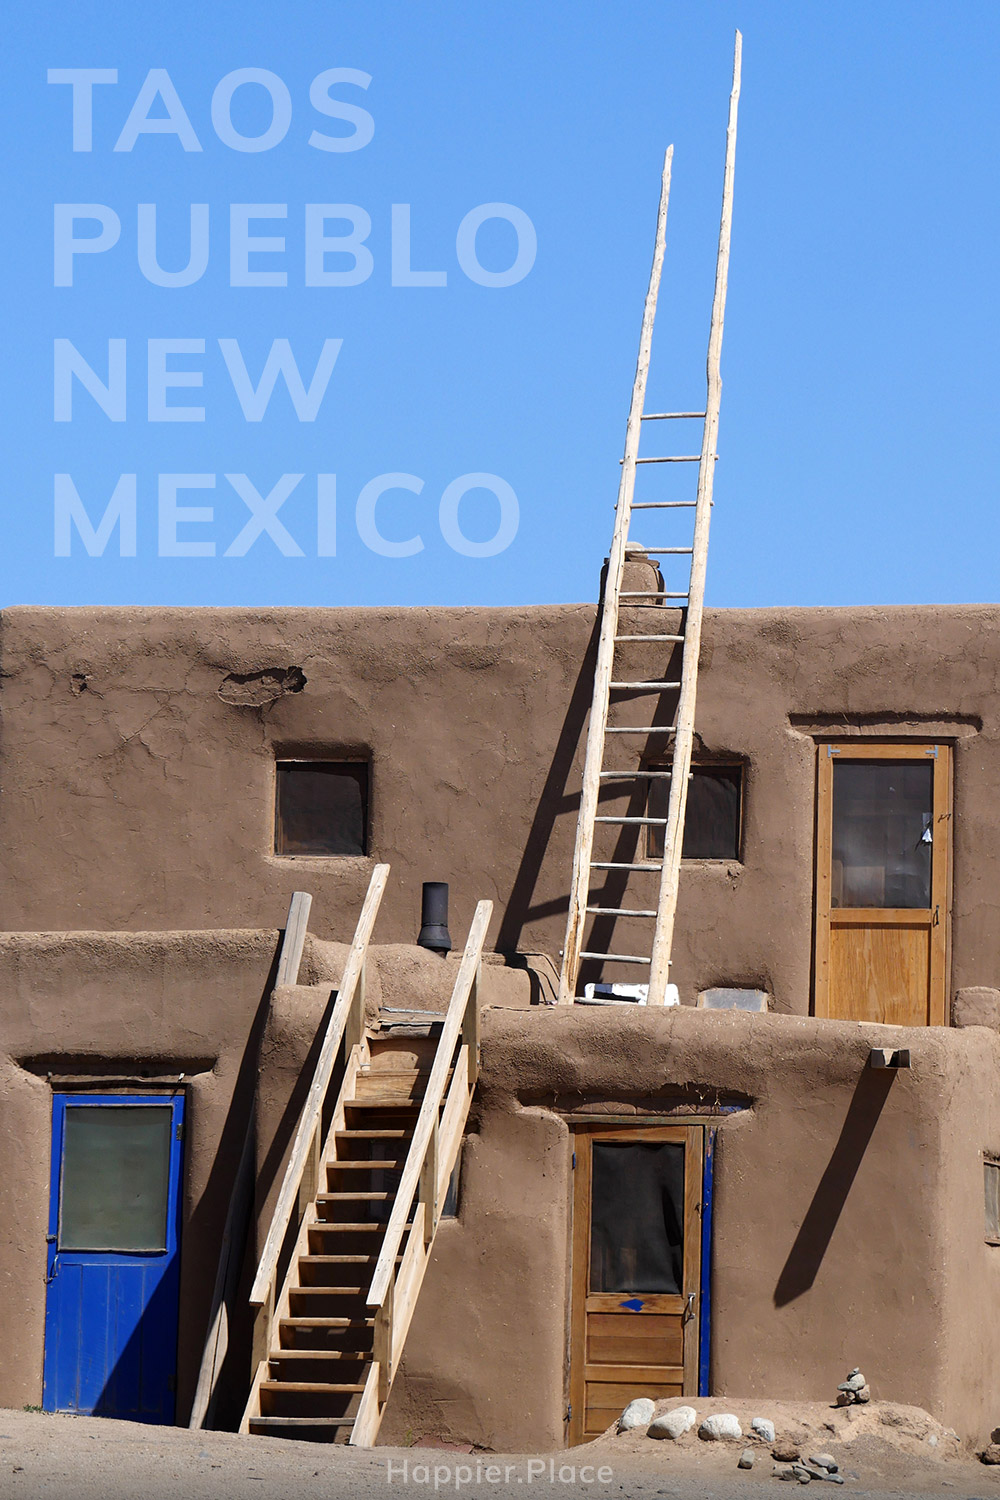 Taos Pueblo, New Mexico, adobe pueblo architecture, ladder to the sky, staircase, blue door, wooden door, Ansel Adams inspiration, Happier Place